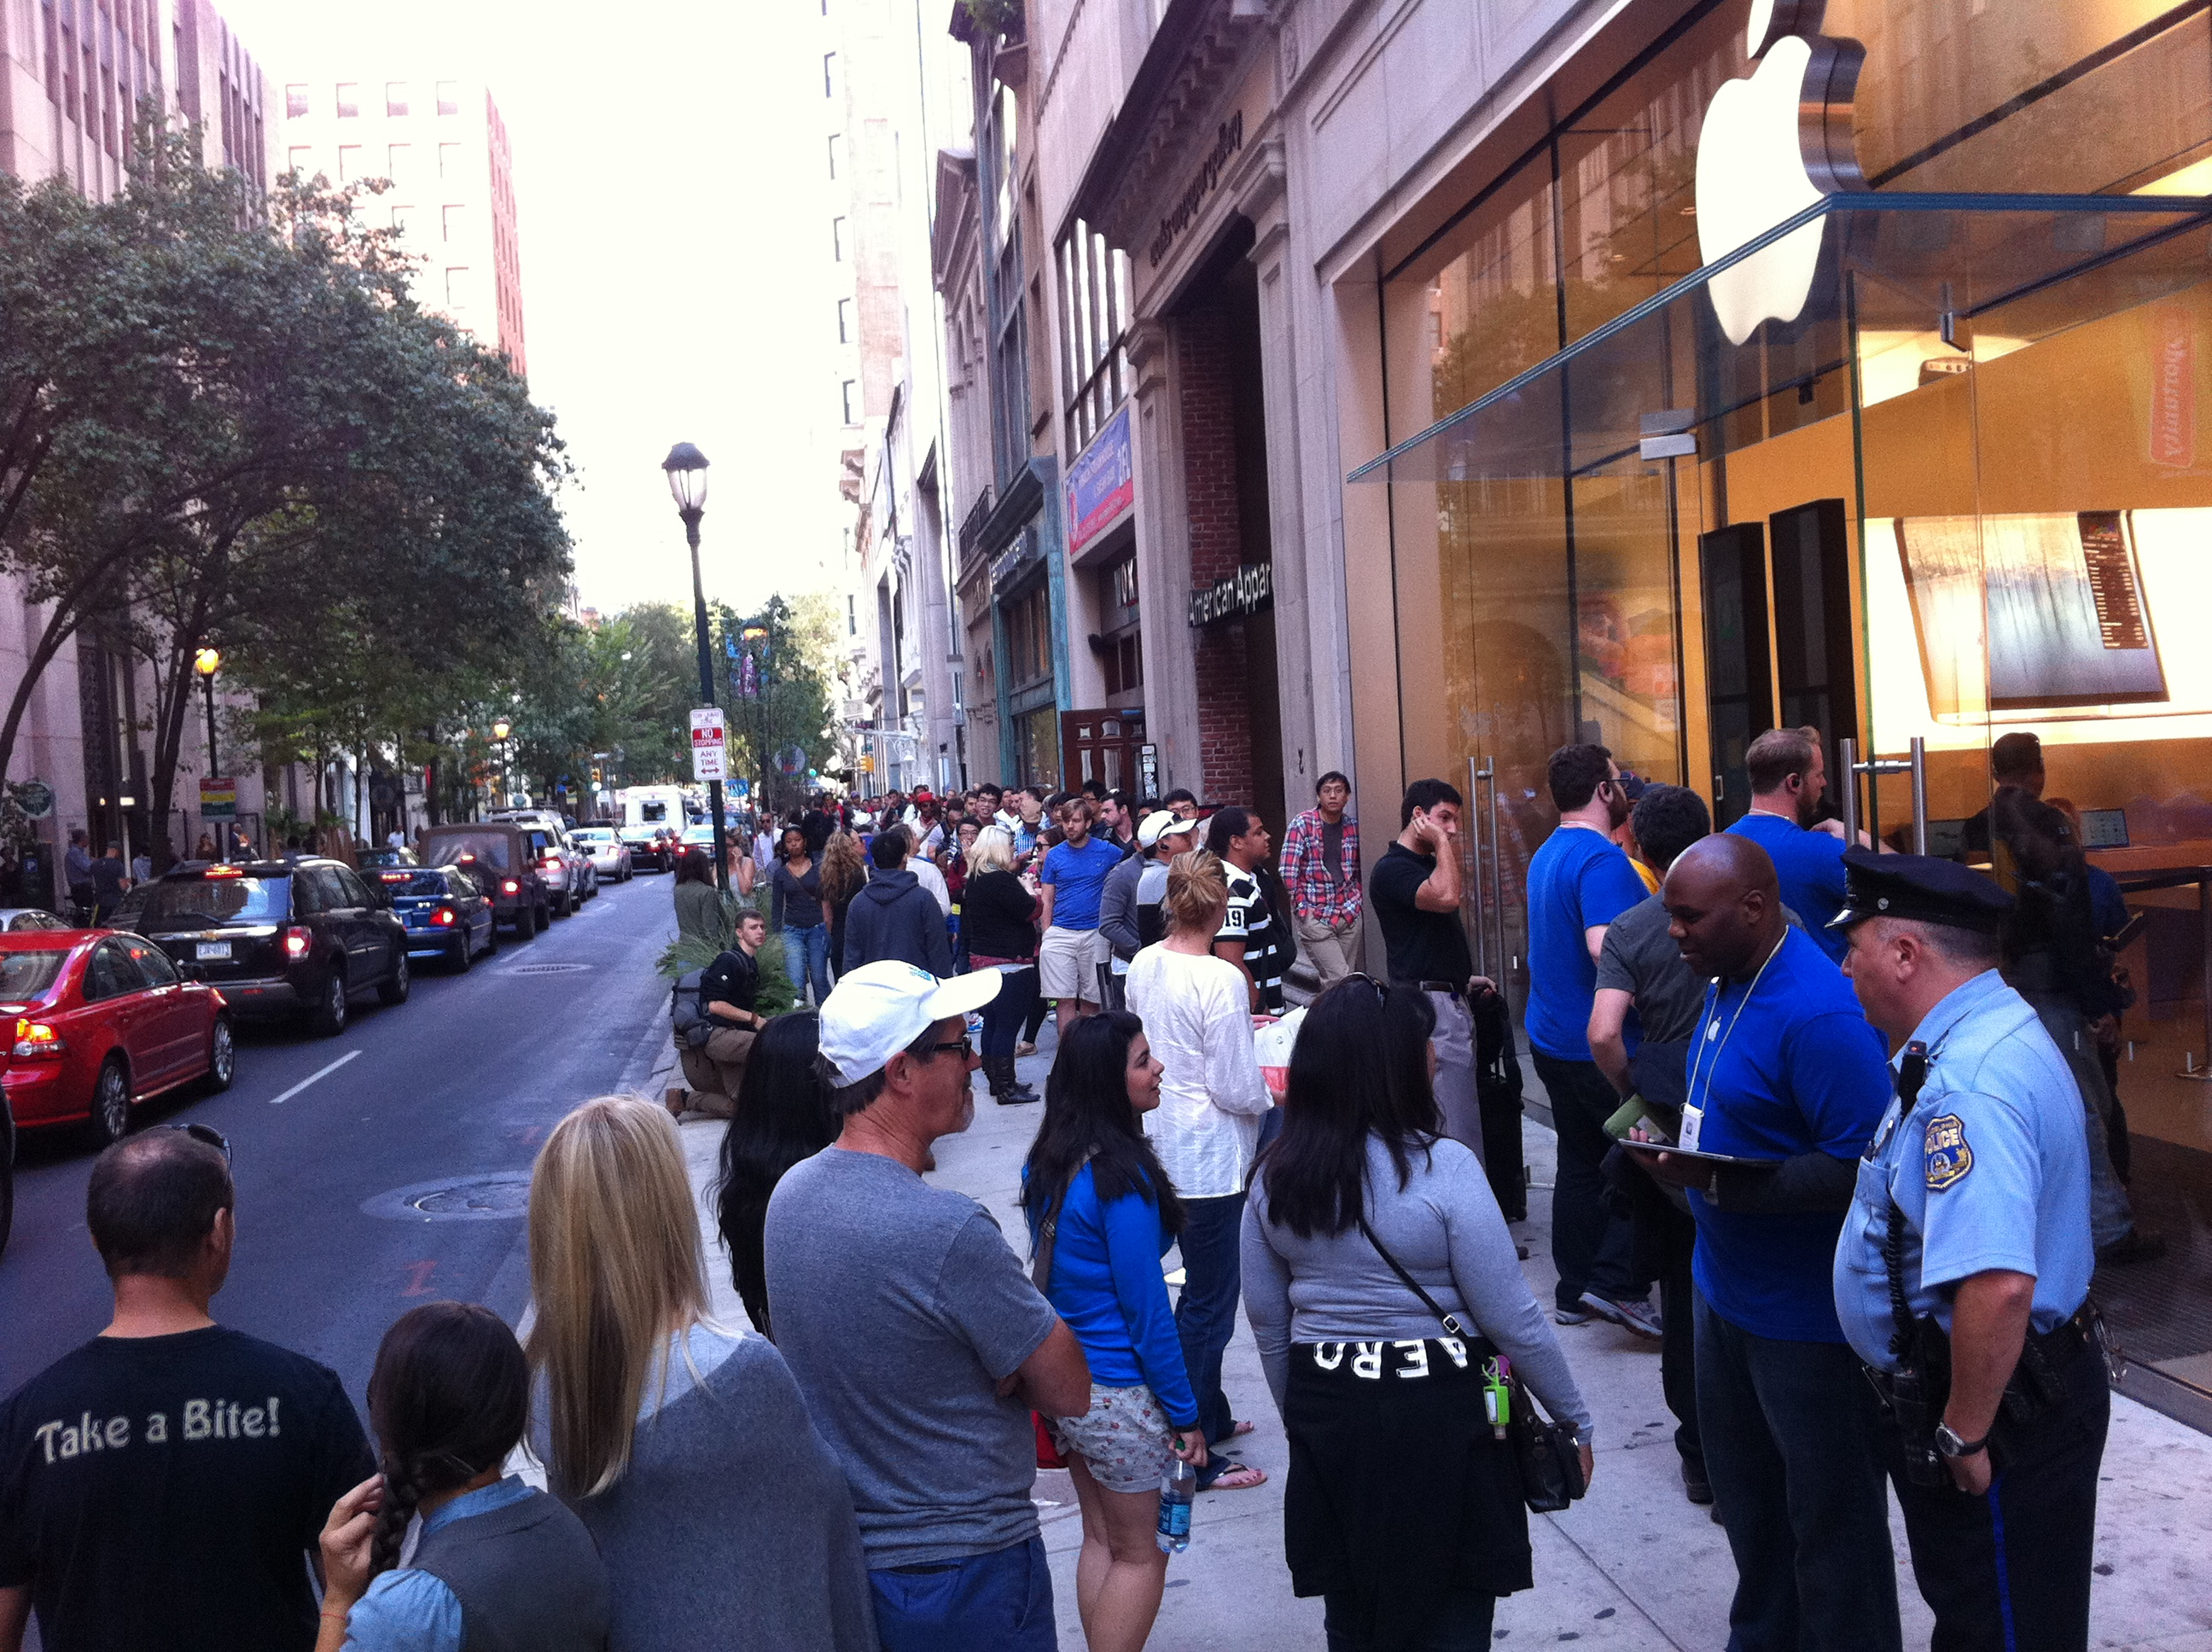 The queue outside Philadelphia's Walnute Street Apple Store Friday morning.